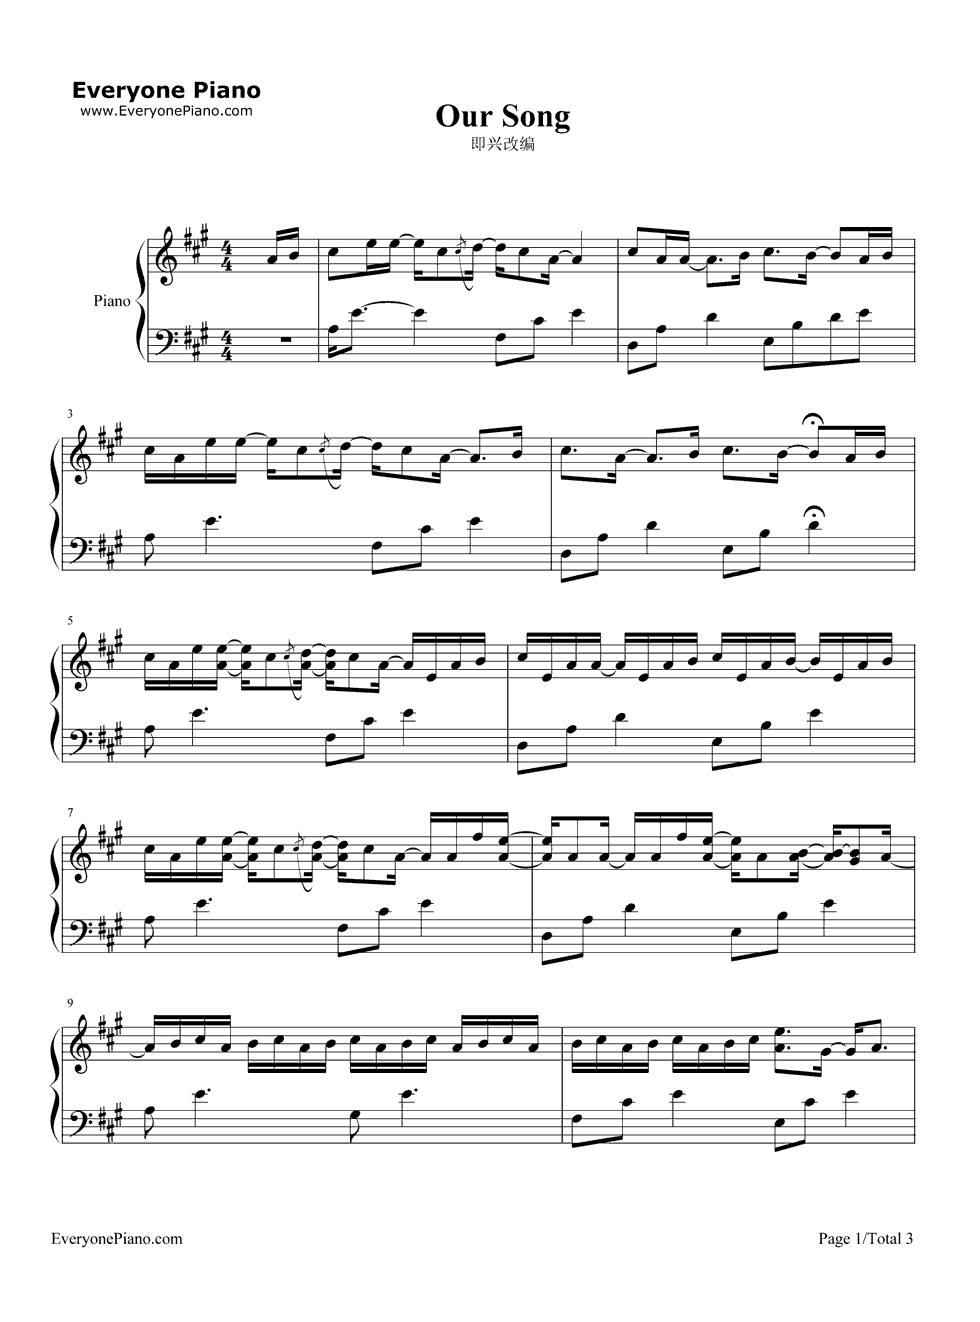 Our song taylor swift stave preview 1 free piano sheet music listen now print sheet our song taylor swift stave preview 1 hexwebz Choice Image